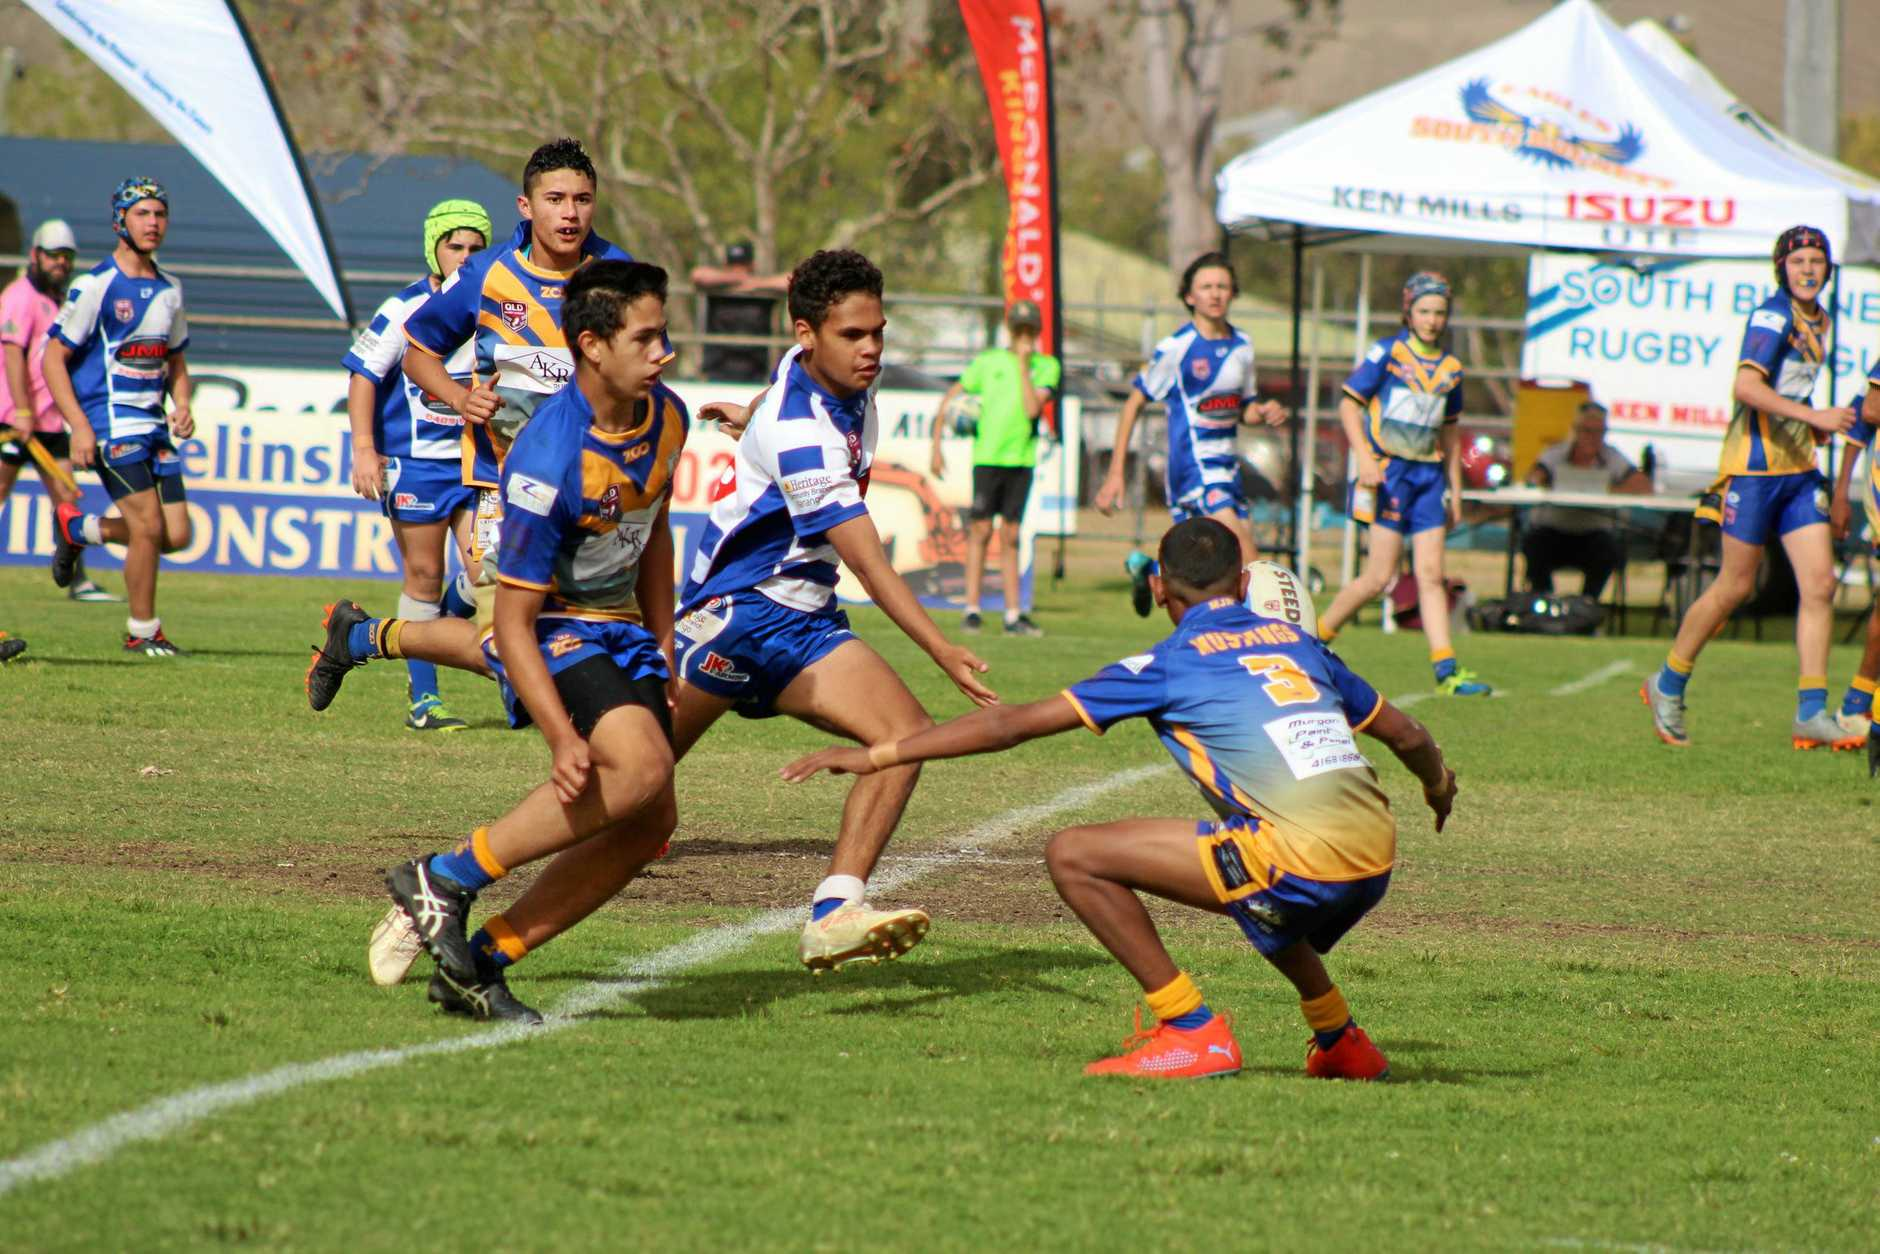 Dominique Sandow trying to defend the ball against Murgon Mustang players at the grand final.